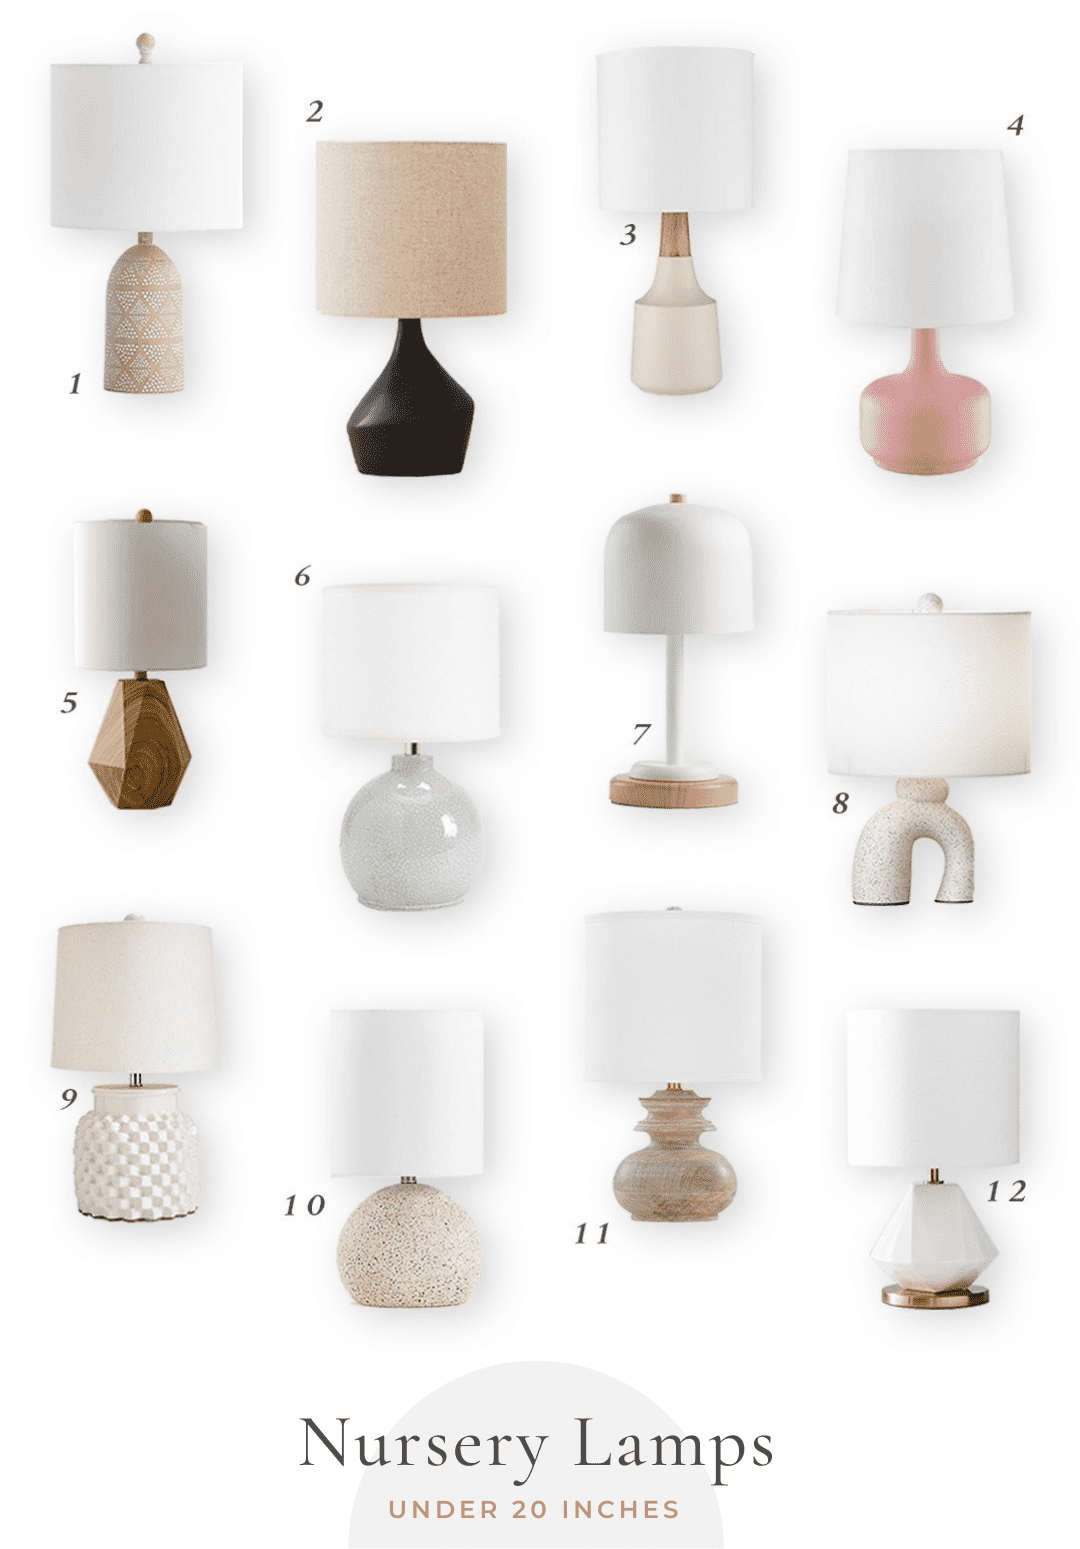 Small Nursery Lamps   Little Crown Interiors